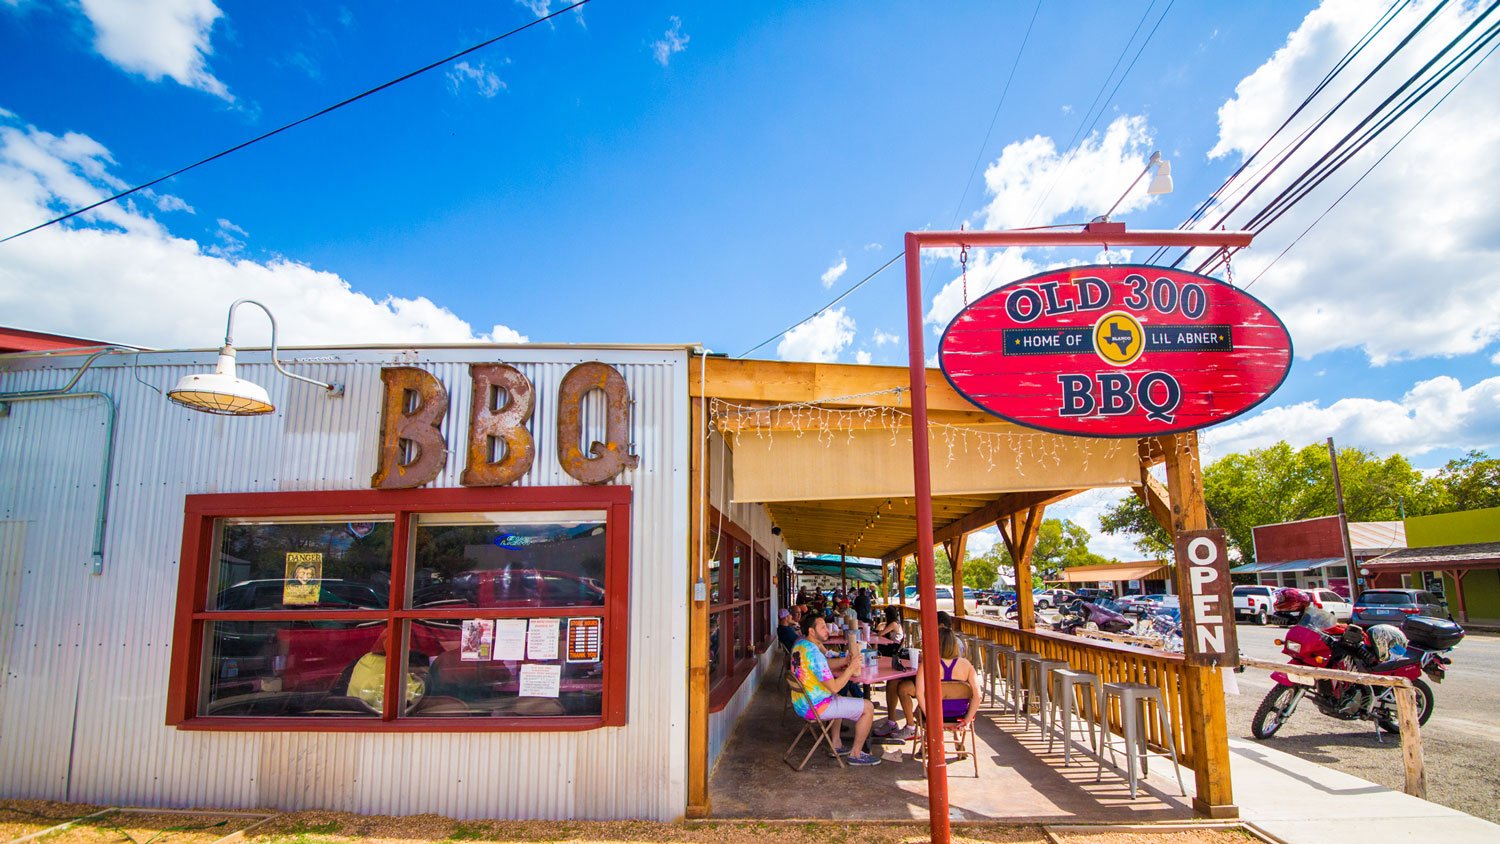 An exterior view of Old 300 BBQ